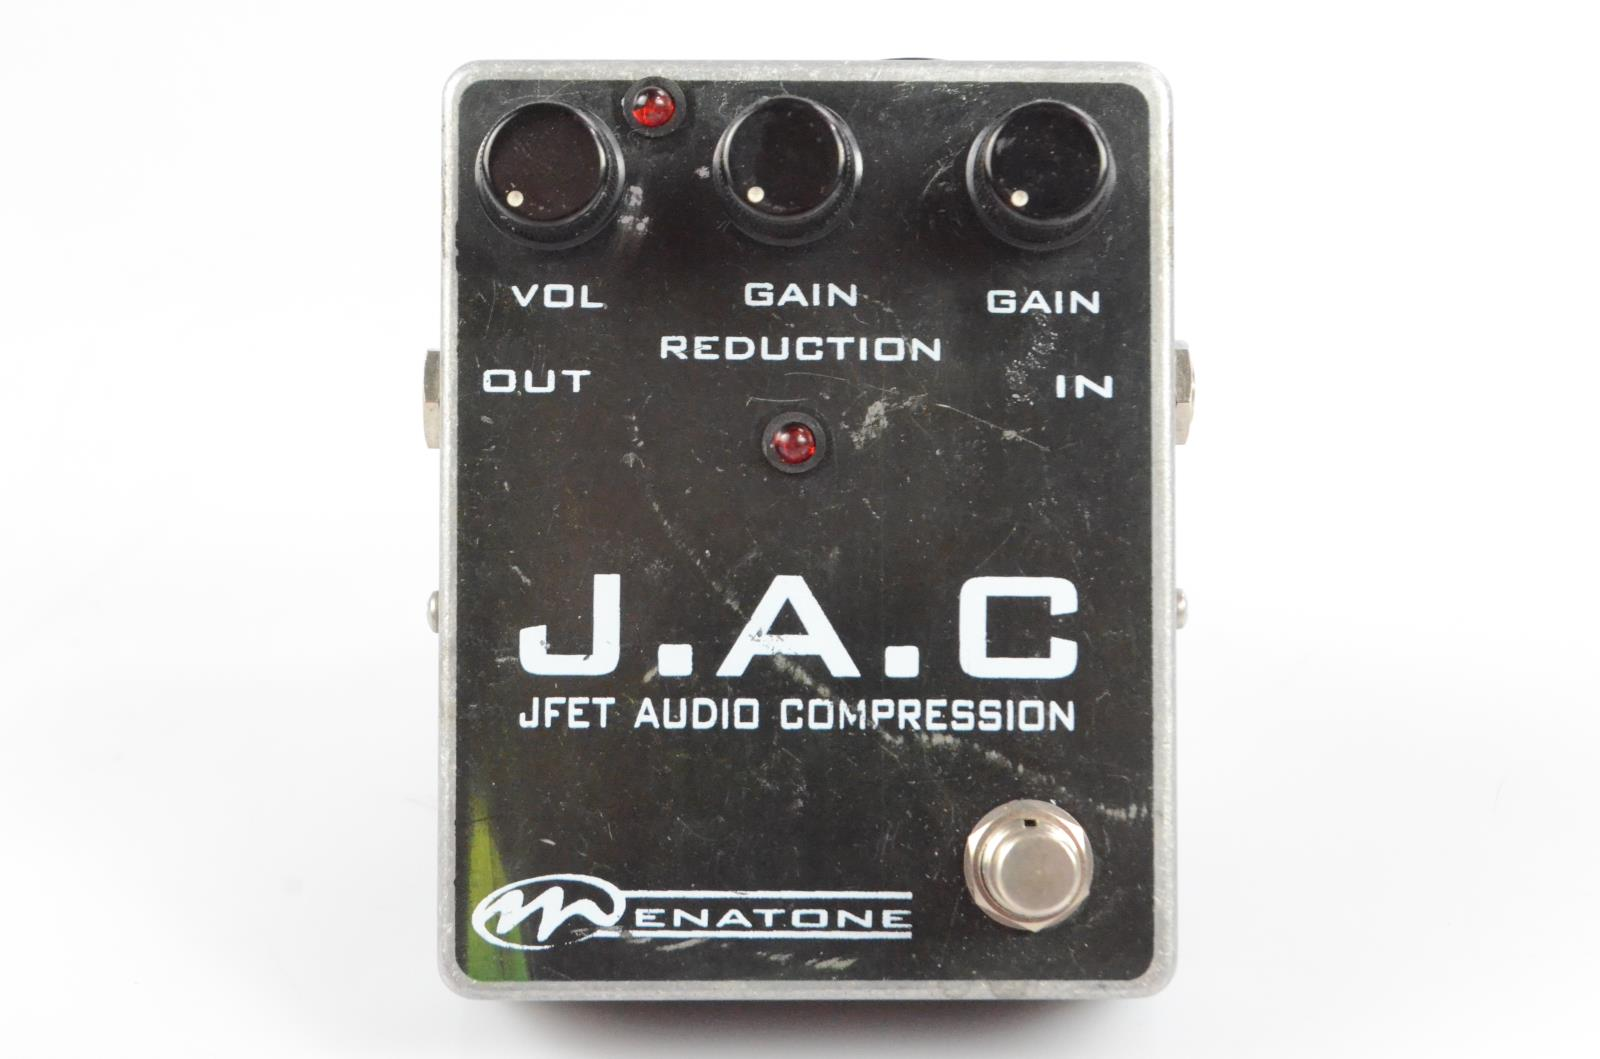 Menatone JAC JFET Audio Compression Guitar Pedal Owned by Carlos Rios #33950